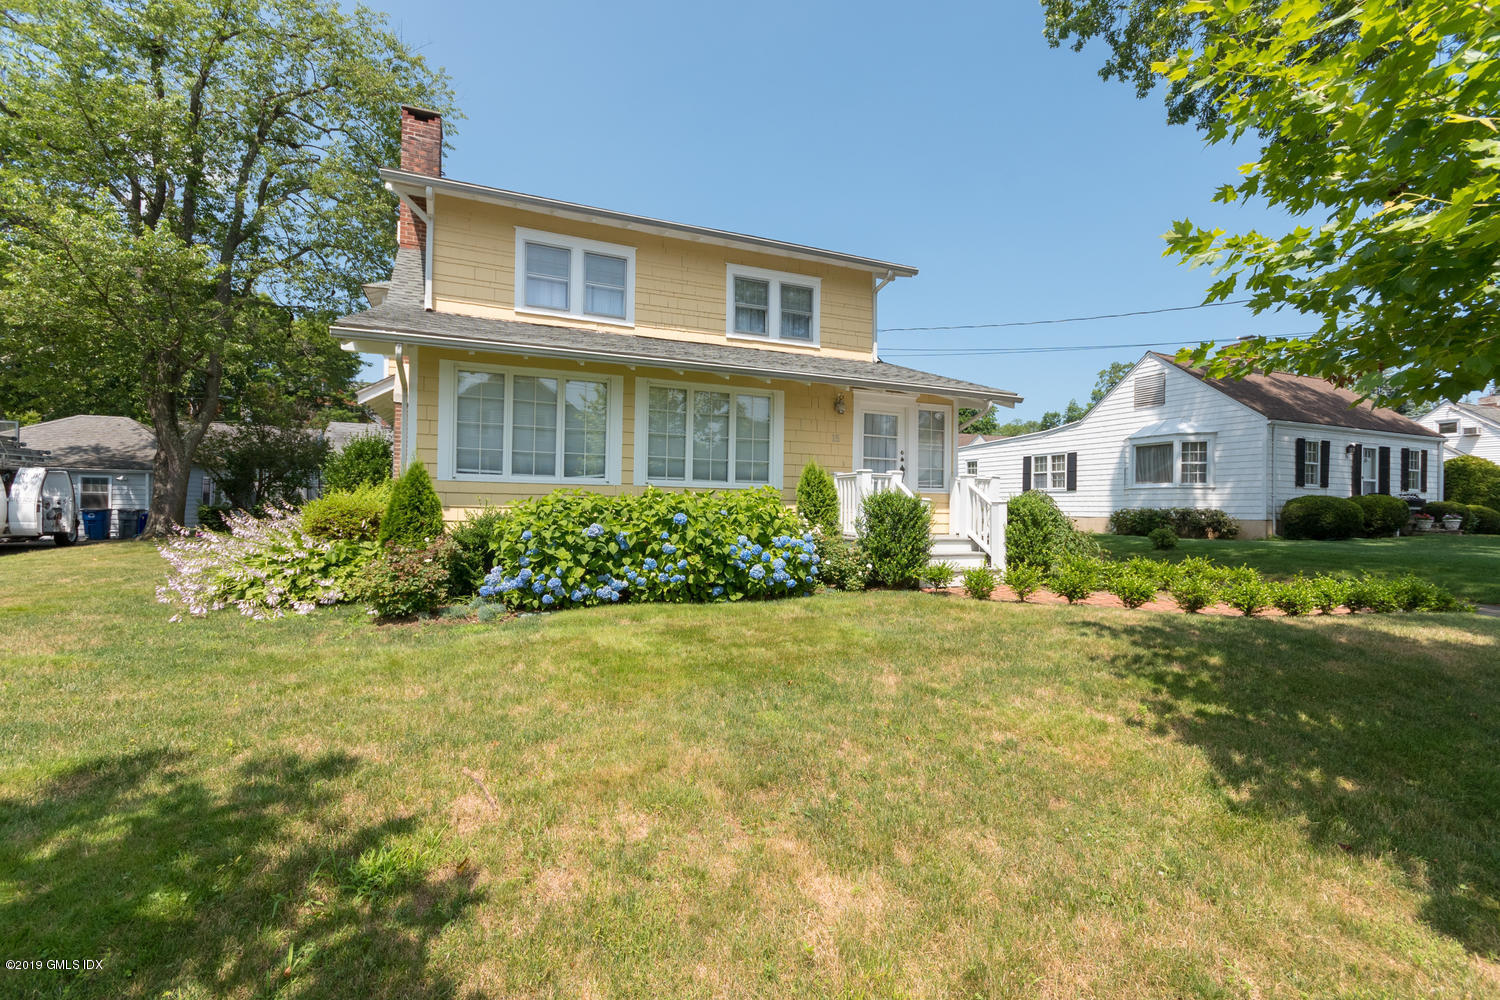 15 Heusted Drive,Old Greenwich,Connecticut 06870,4 Bedrooms Bedrooms,2 BathroomsBathrooms,Single family,Heusted,107276